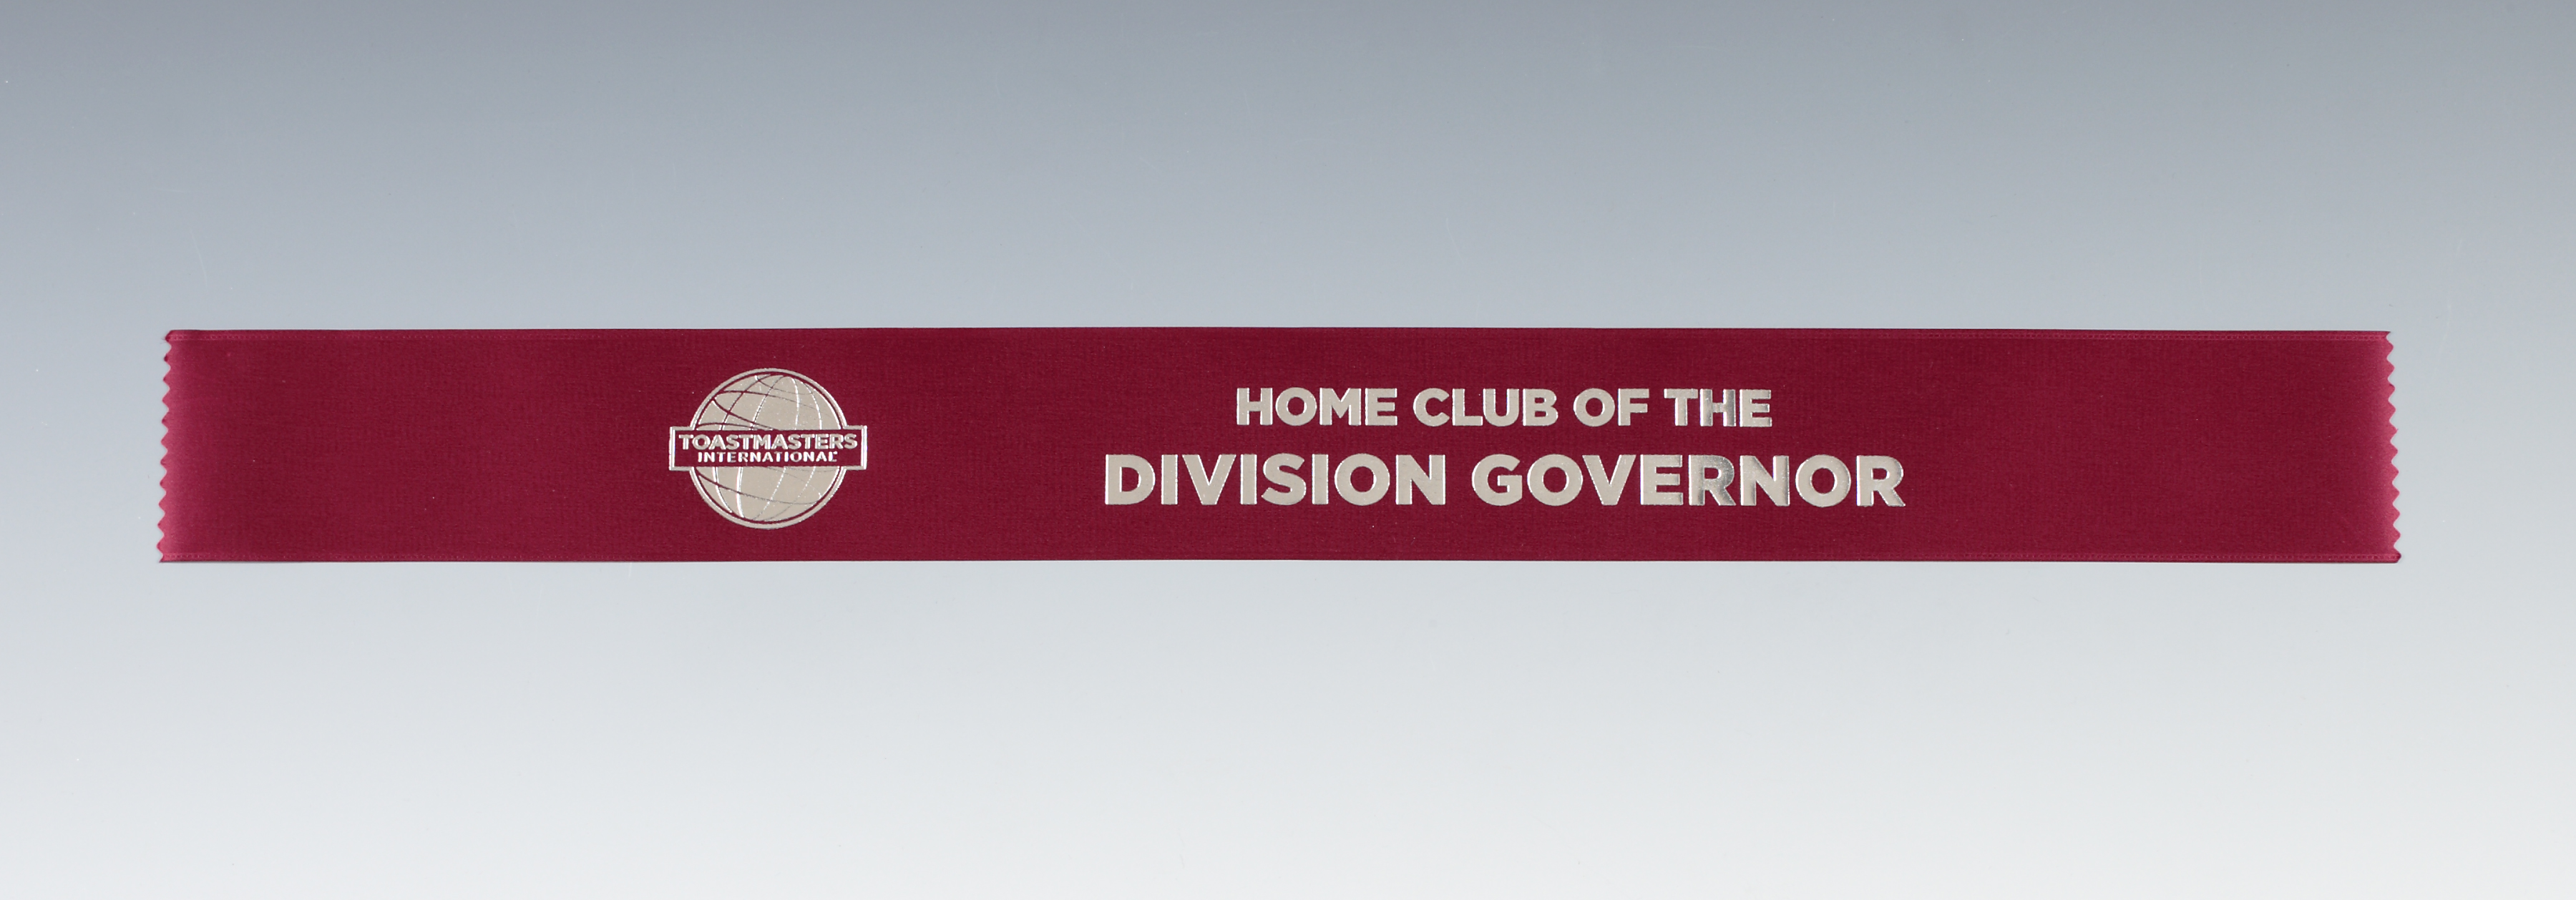 Home Club of the Division Governor Ribbon